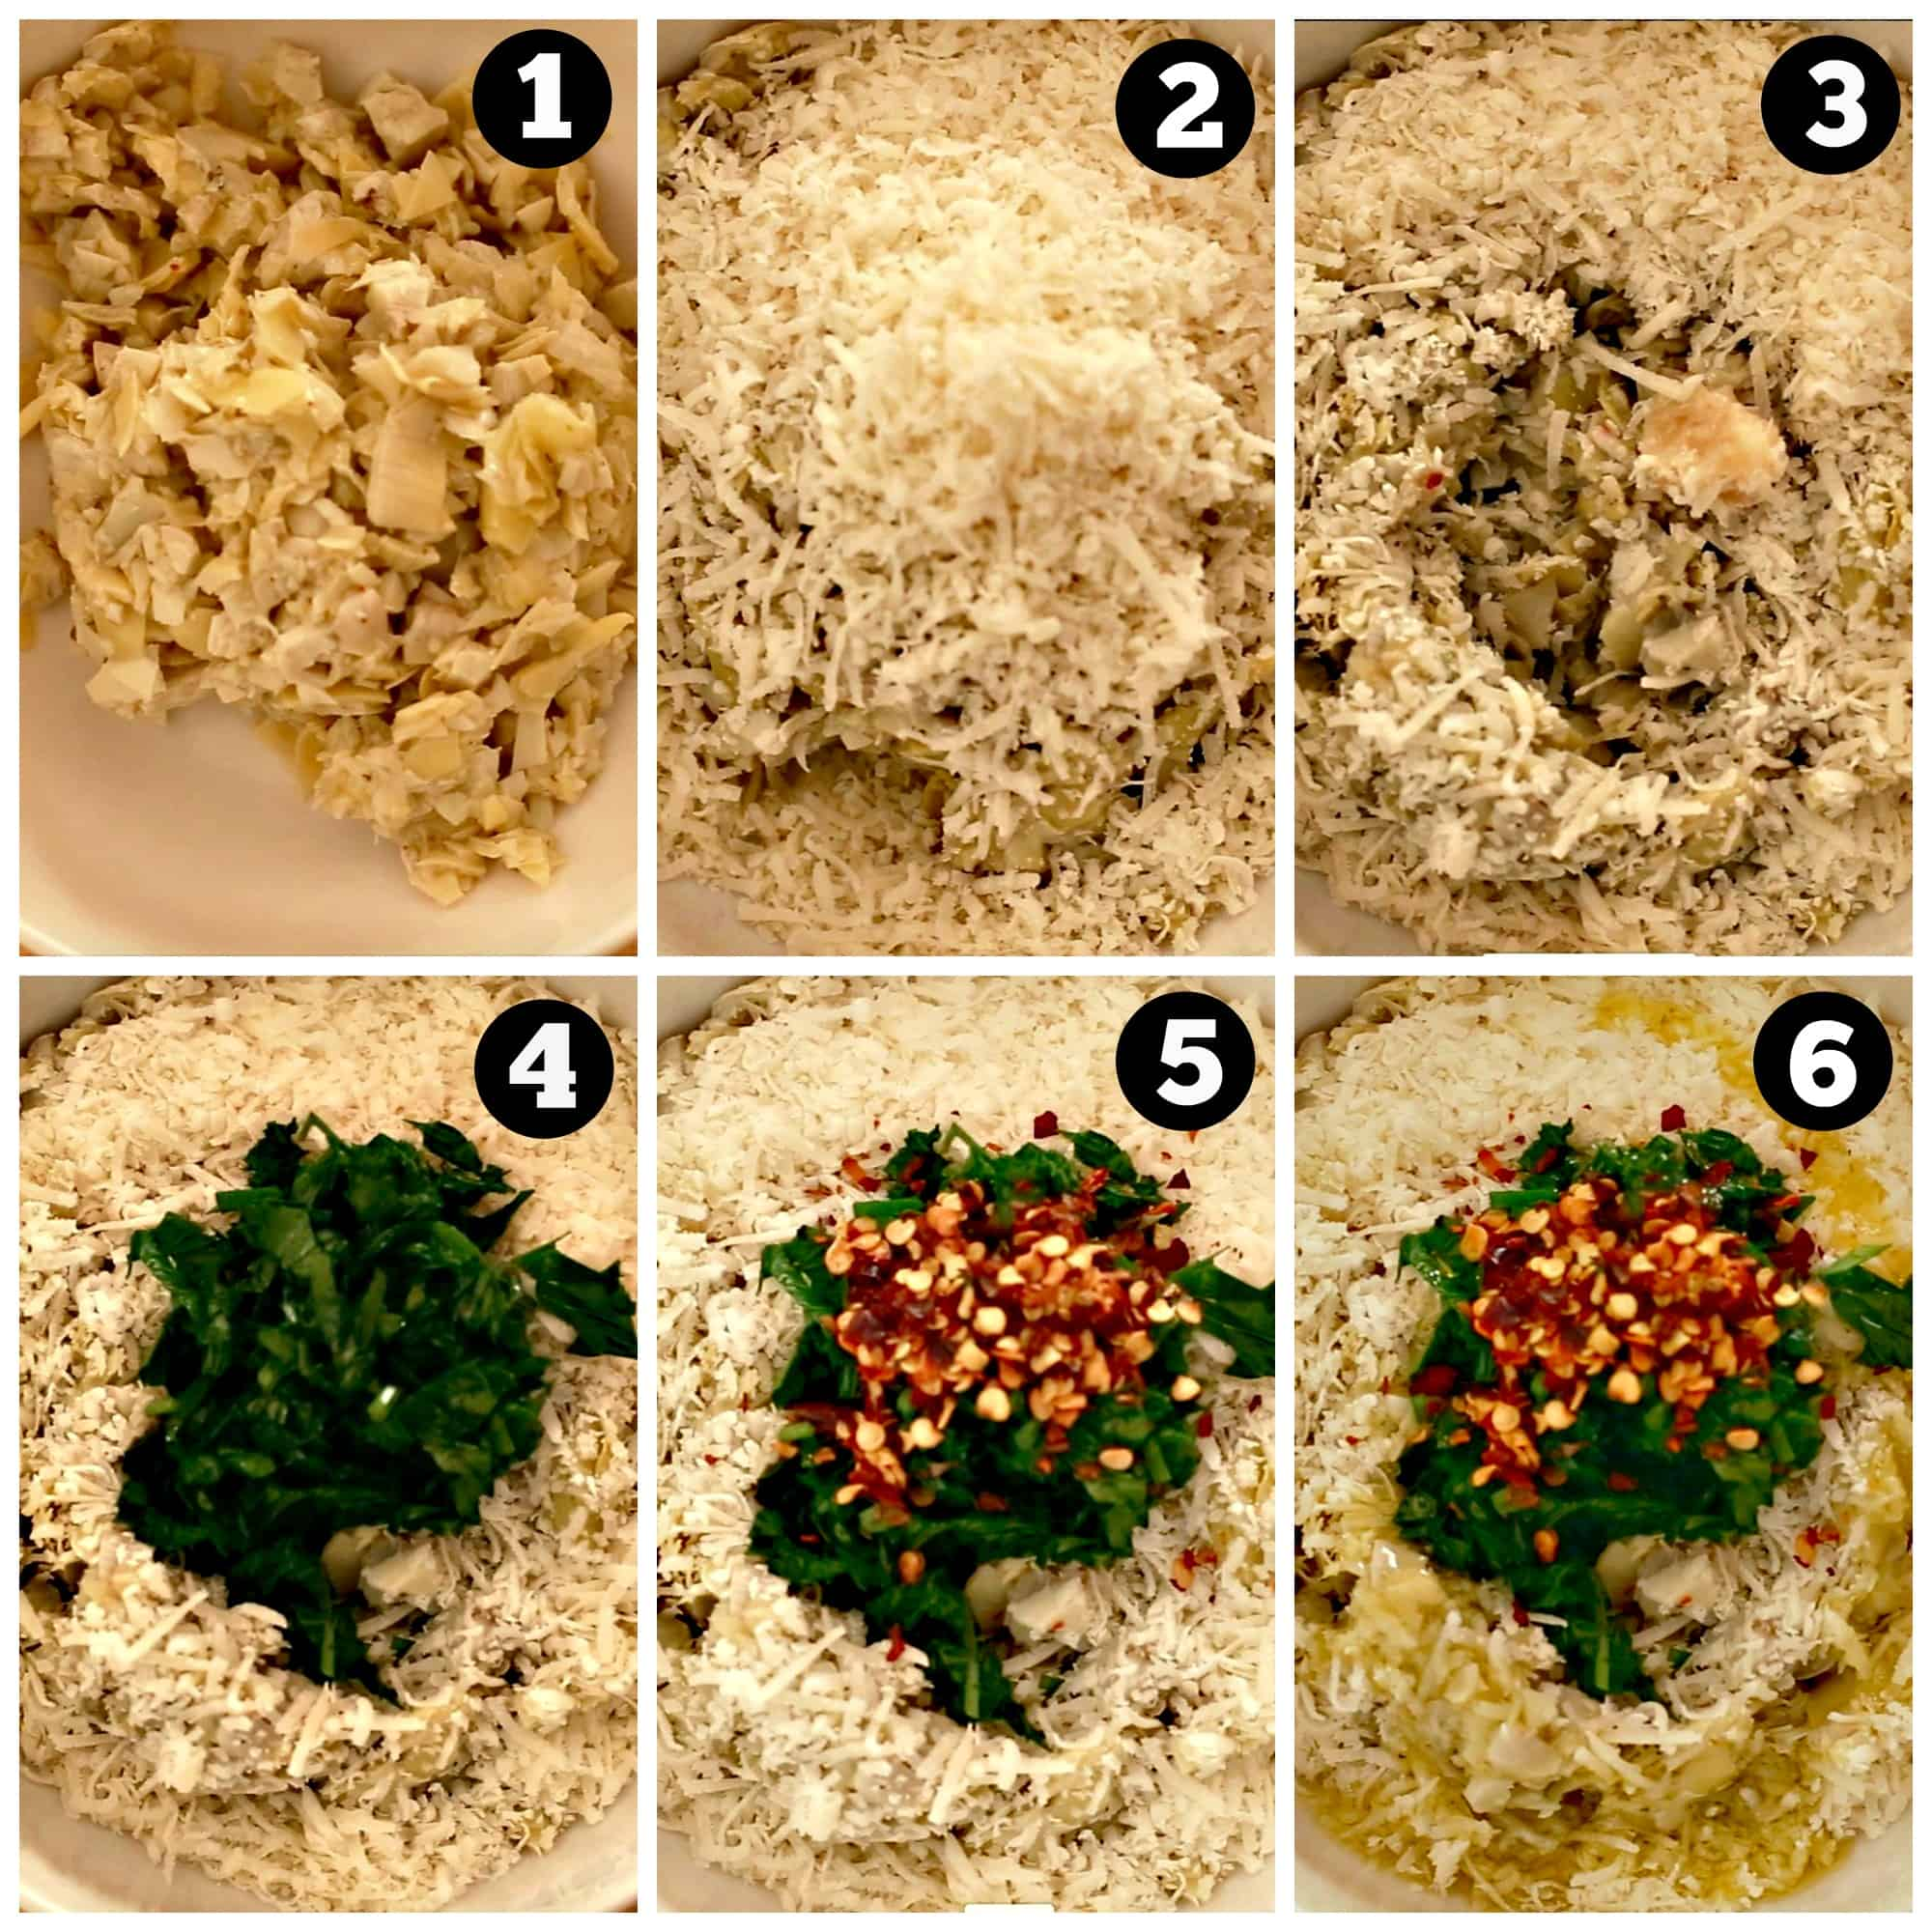 Step by step photos of making an artichoke dip recipe